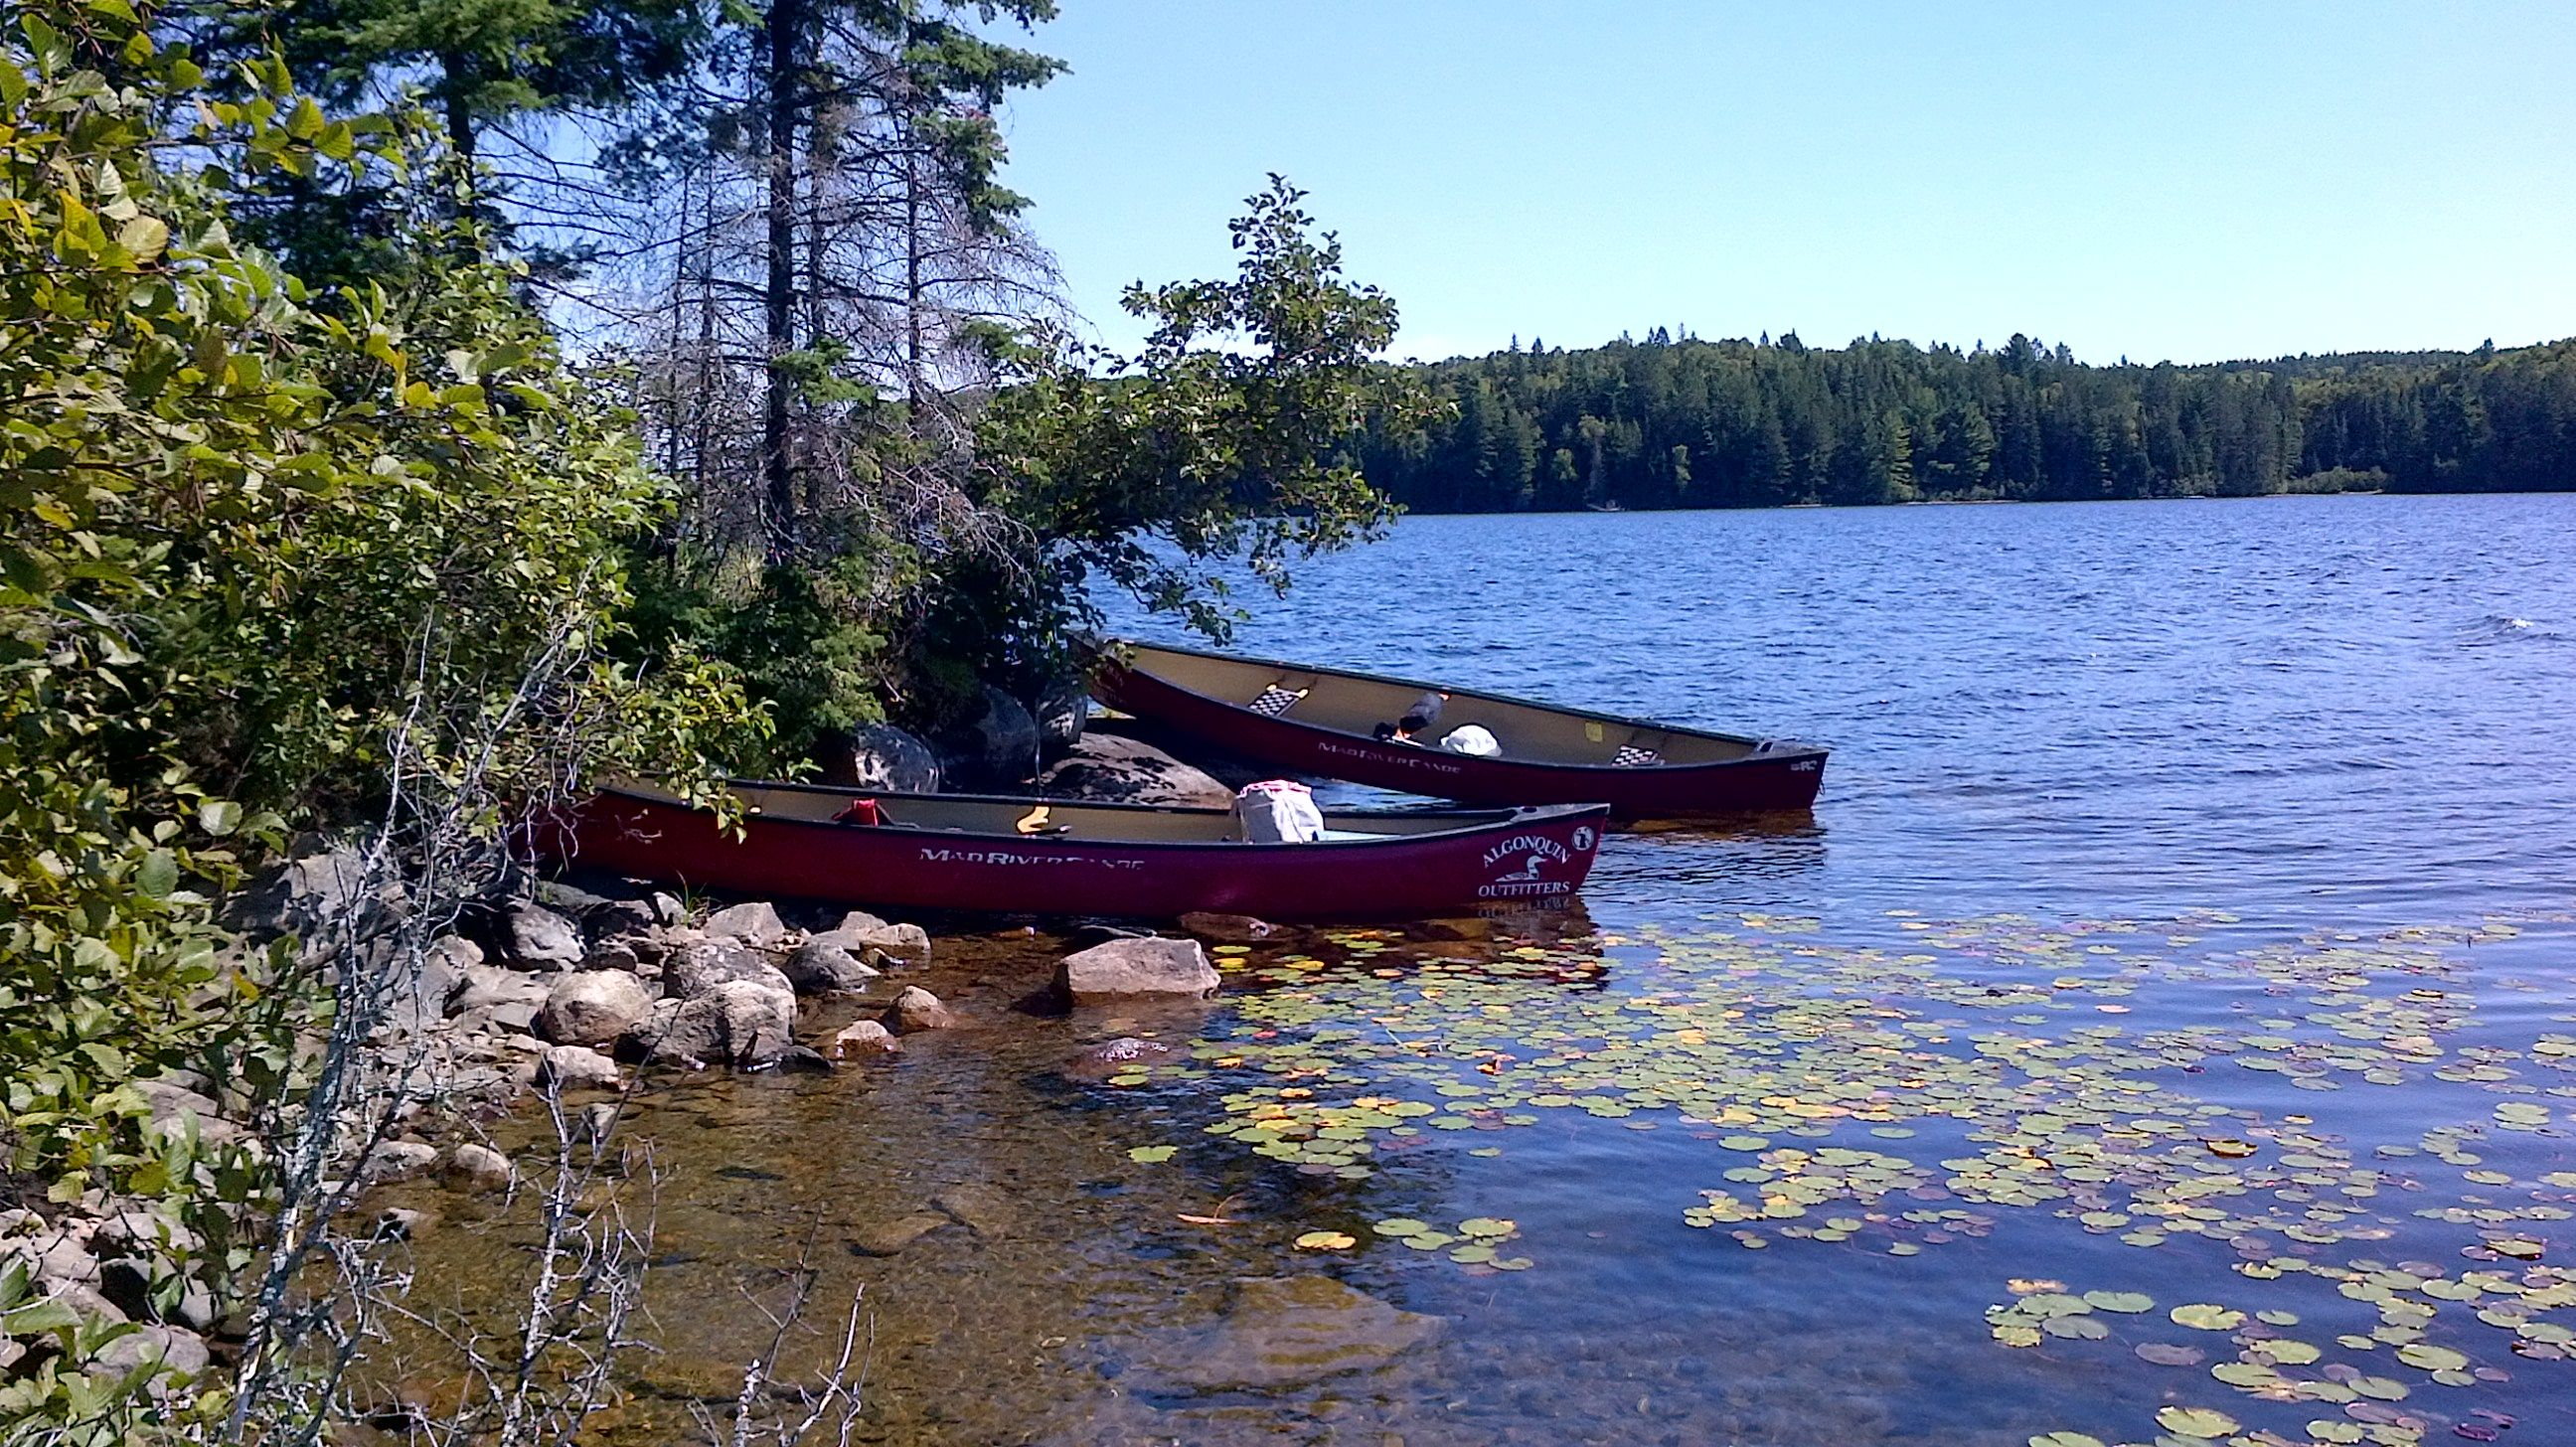 Not quite Toronto, but only a couple of hours north in Opeongo Lake, Ontario